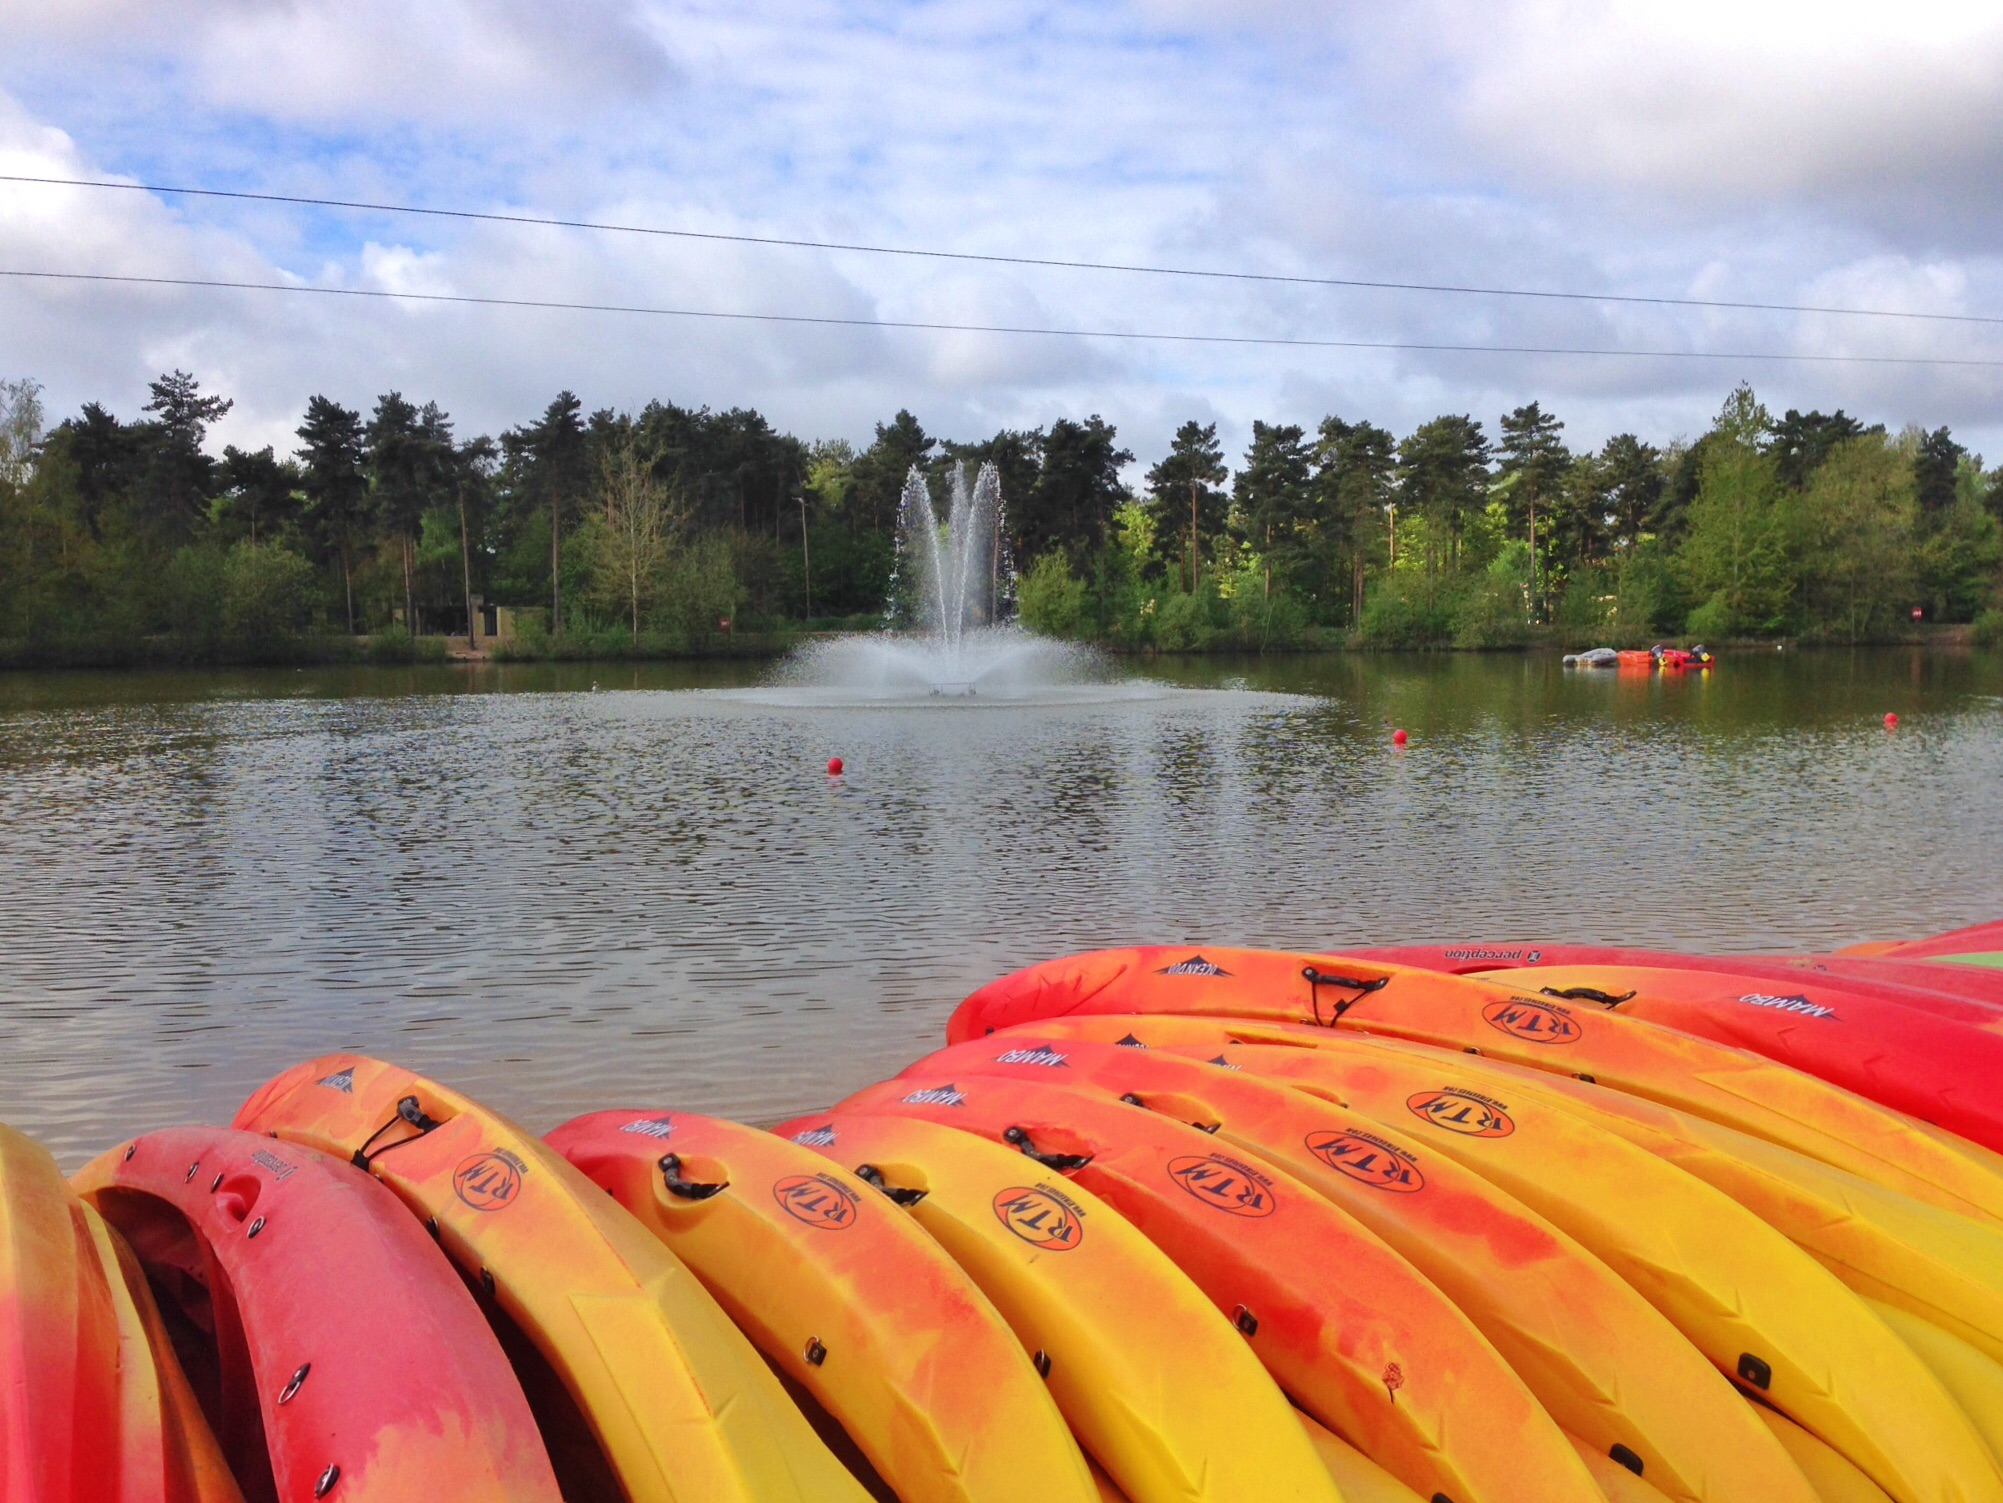 At Center Parcs - The Lake and Fountain